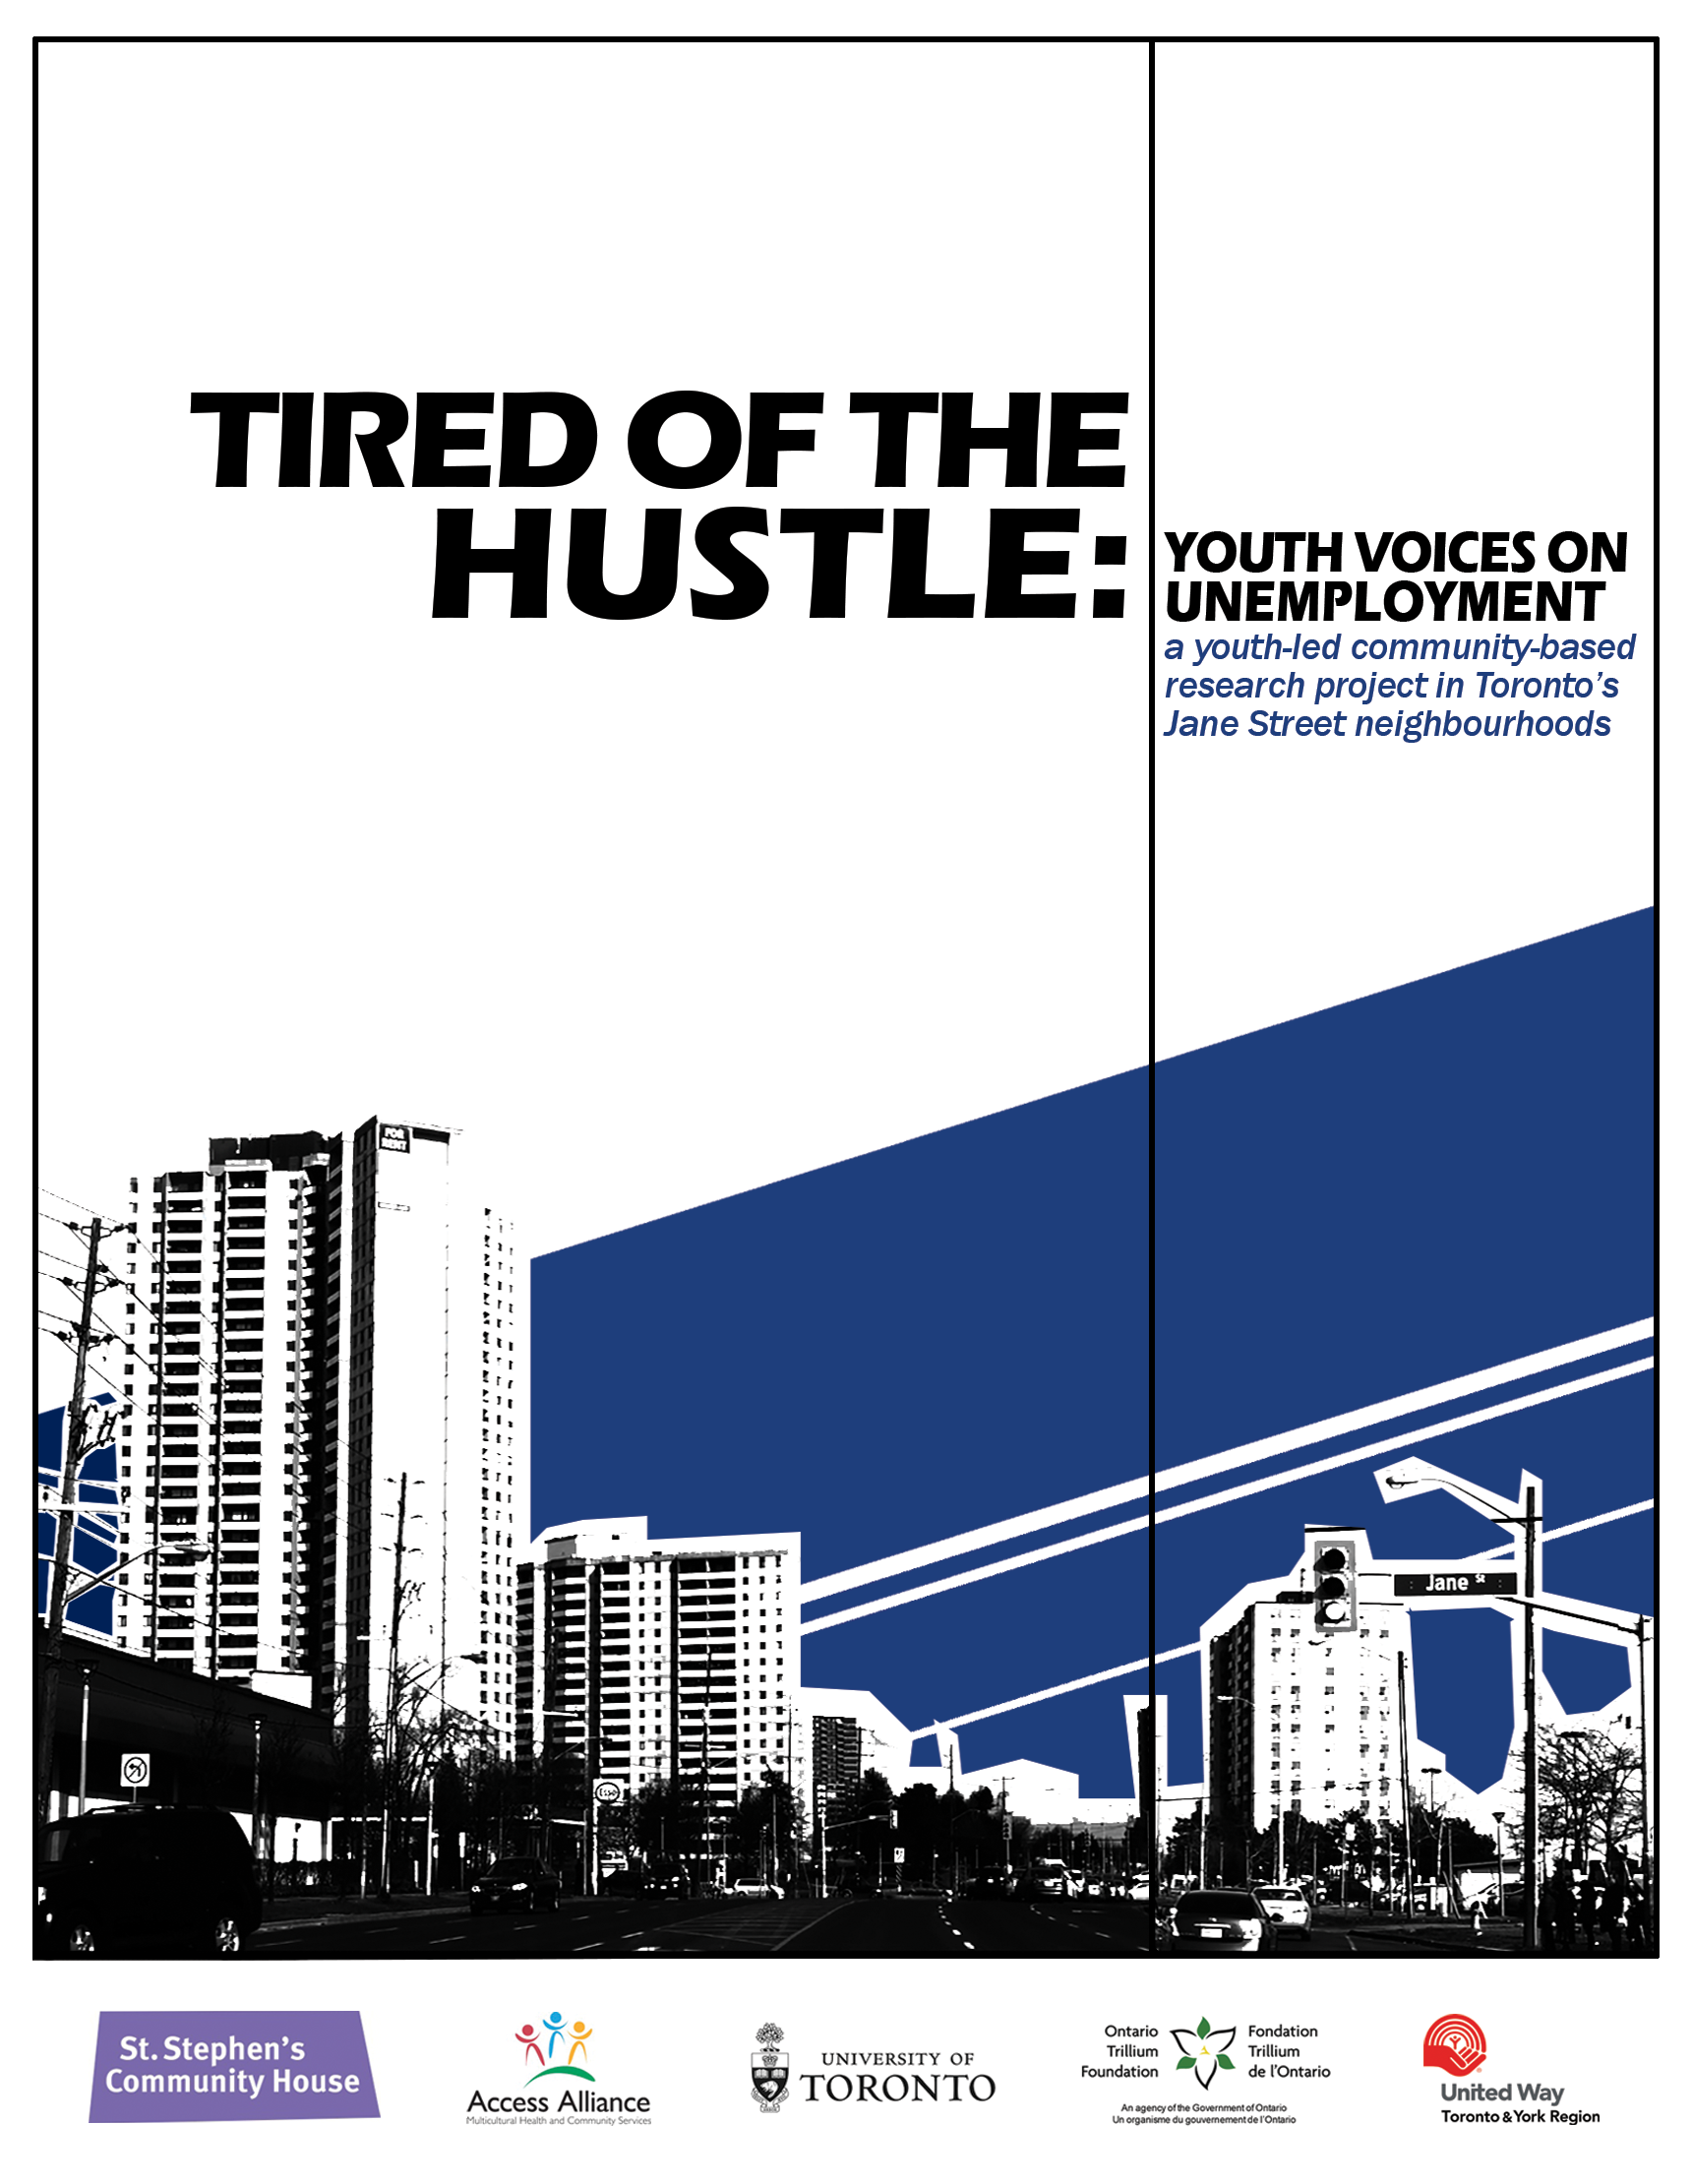 Tired of the Hustle: Youth Voices on Unemployment